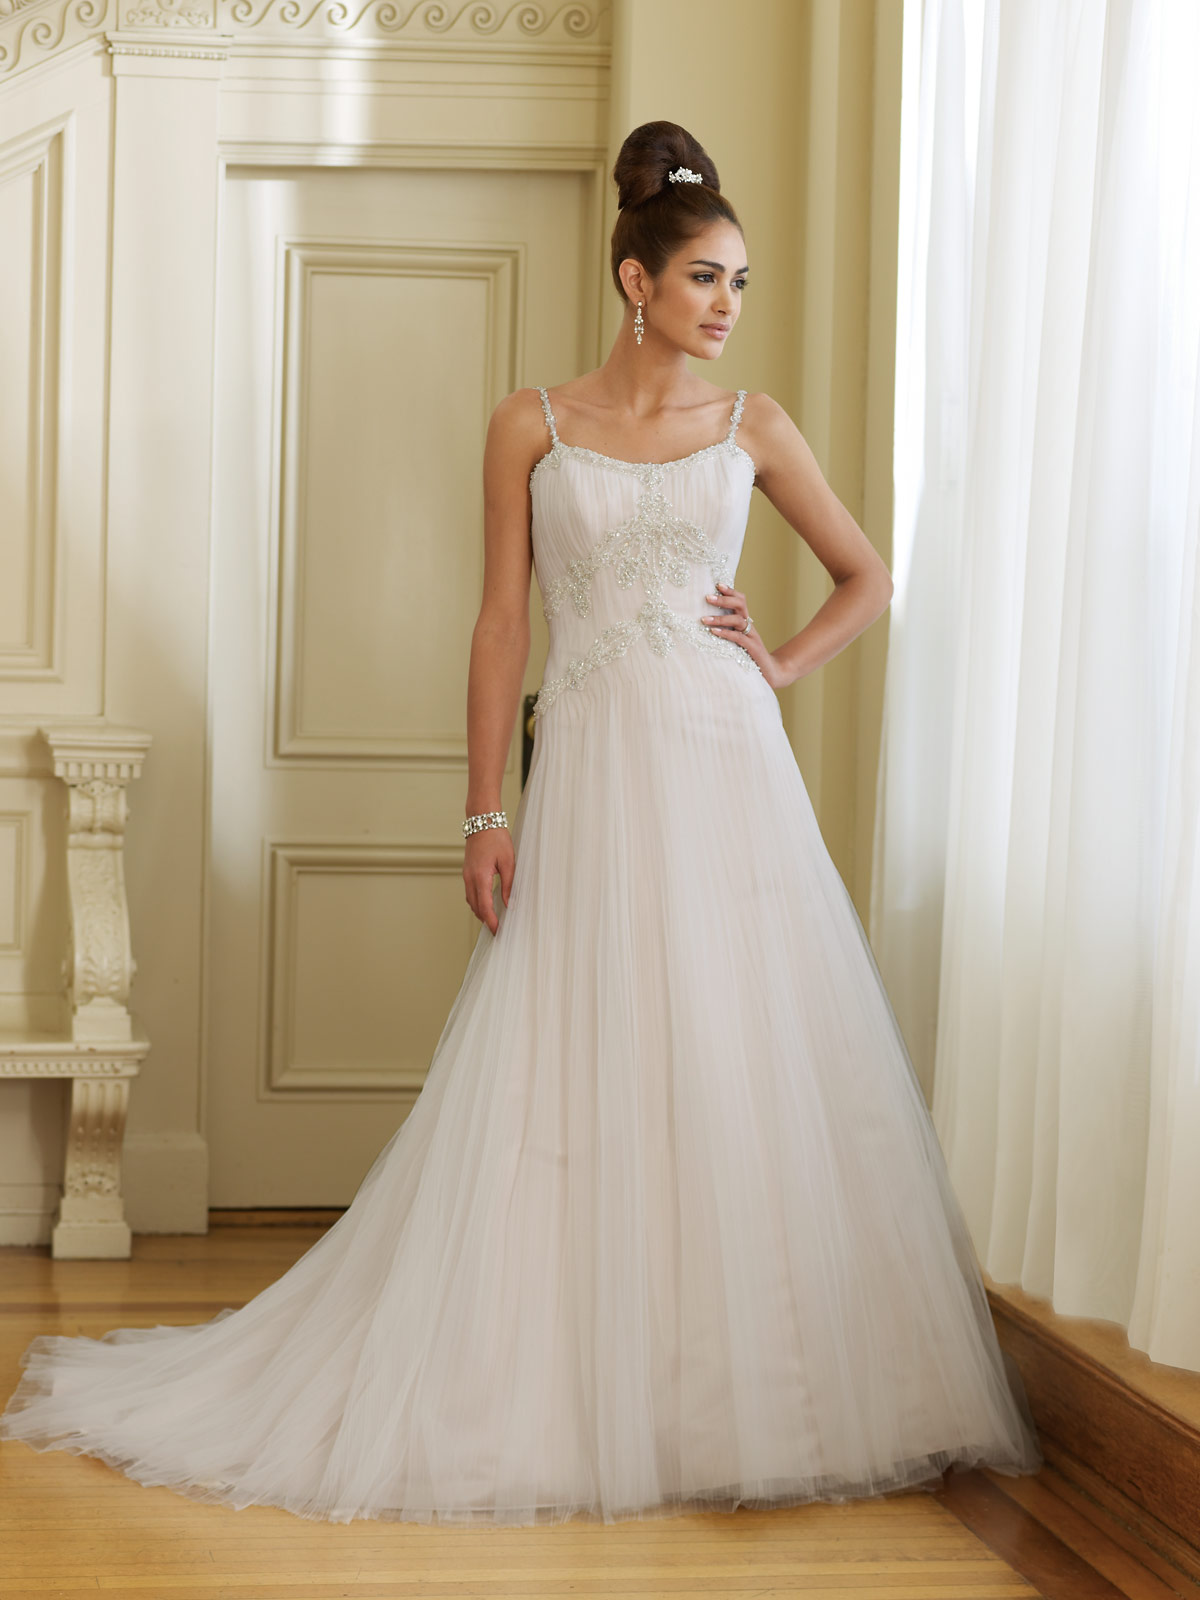 Different Wedding Dresses Ideas : Wedding dress quotes quotesgram